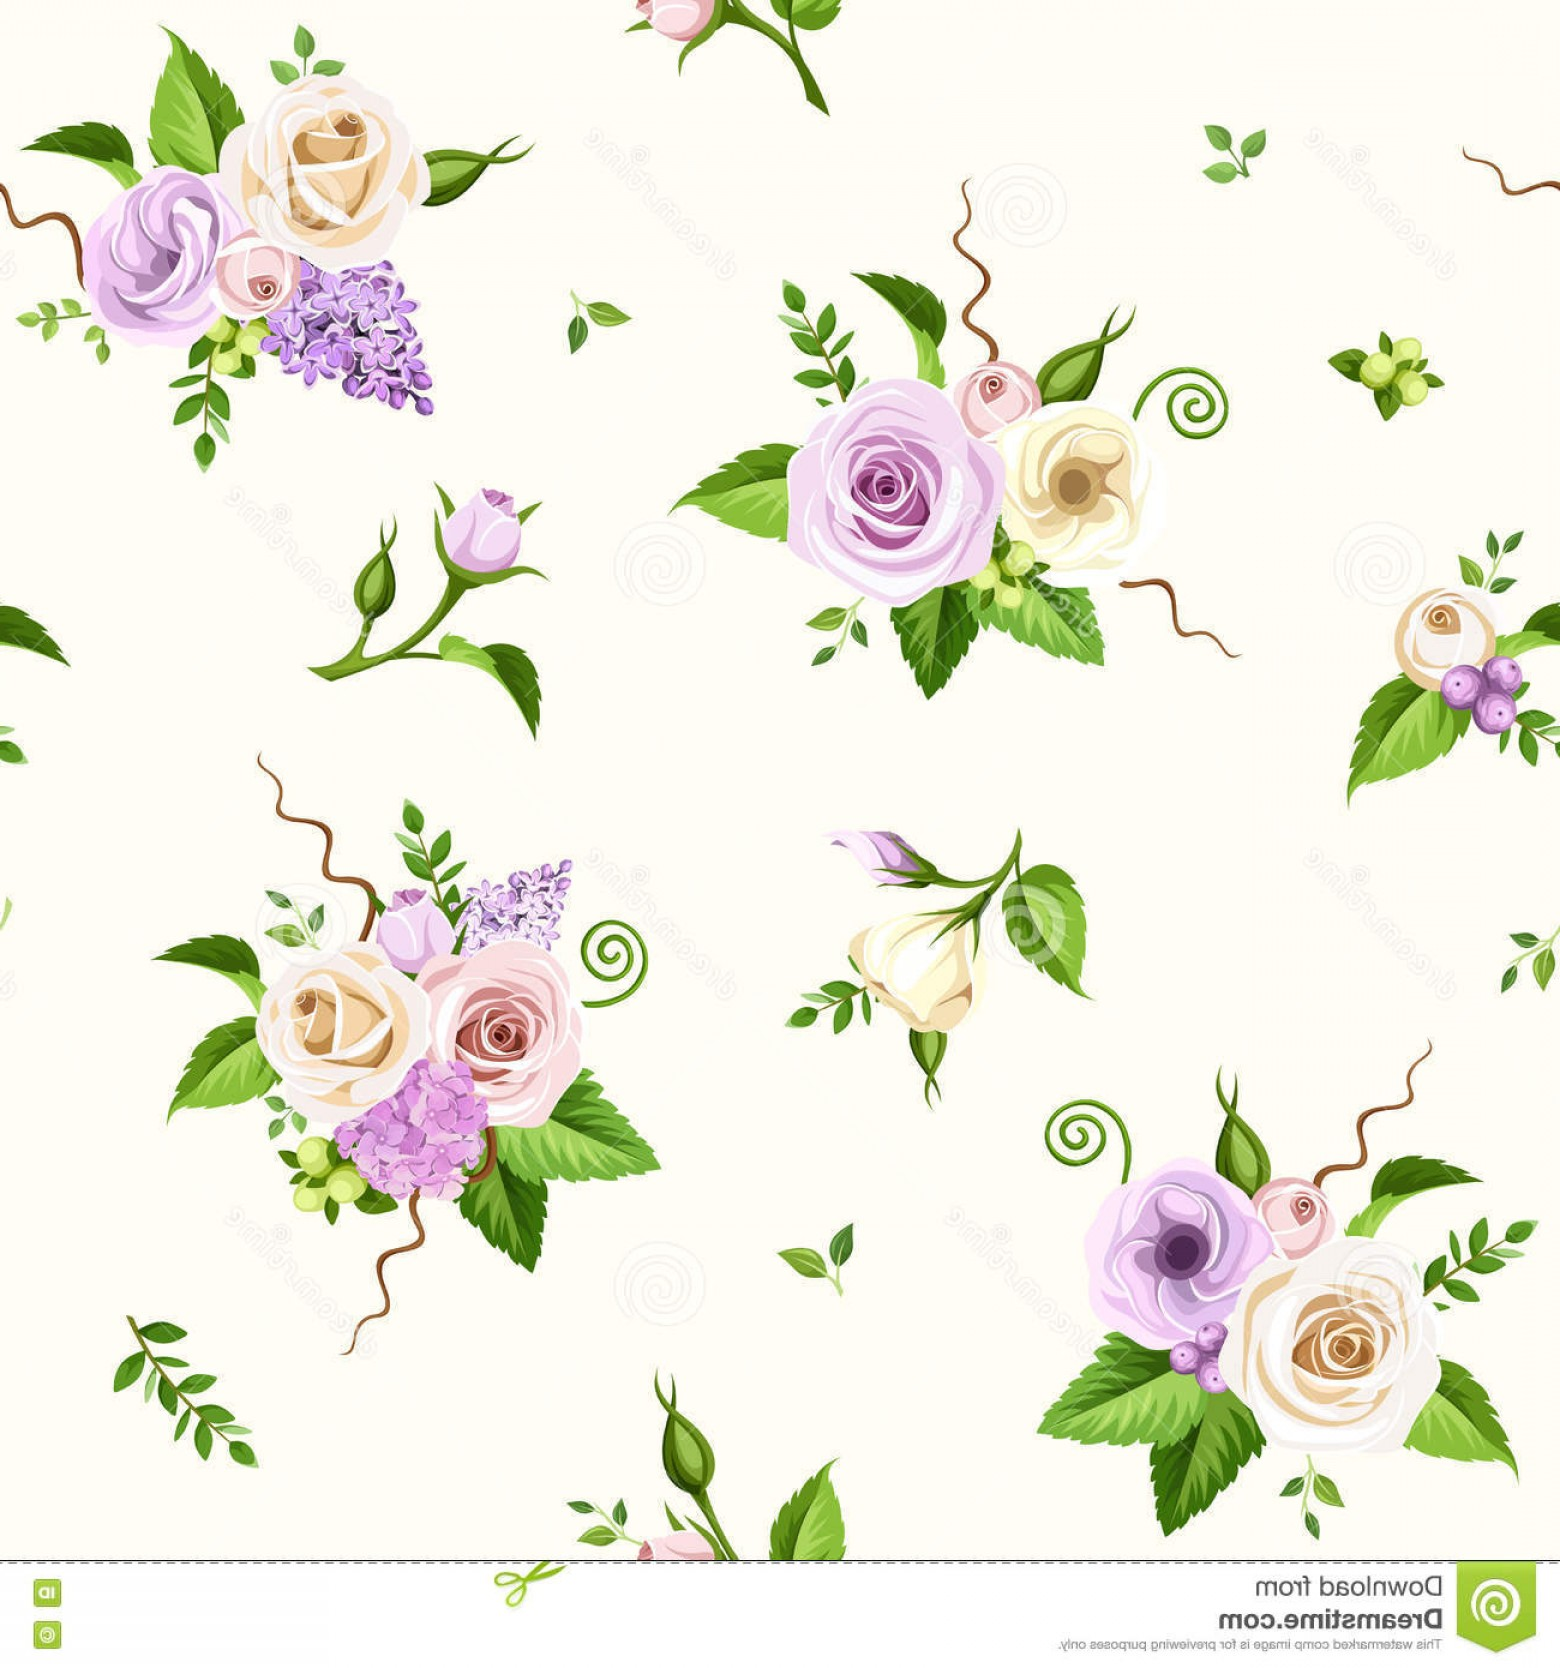 Purple Green And White Vector: Stock Illustration Seamless Pattern Purple White Flowers Vector Illustration Pink Roses Lisianthuses Lilac Hydrangea Green Leaves Image